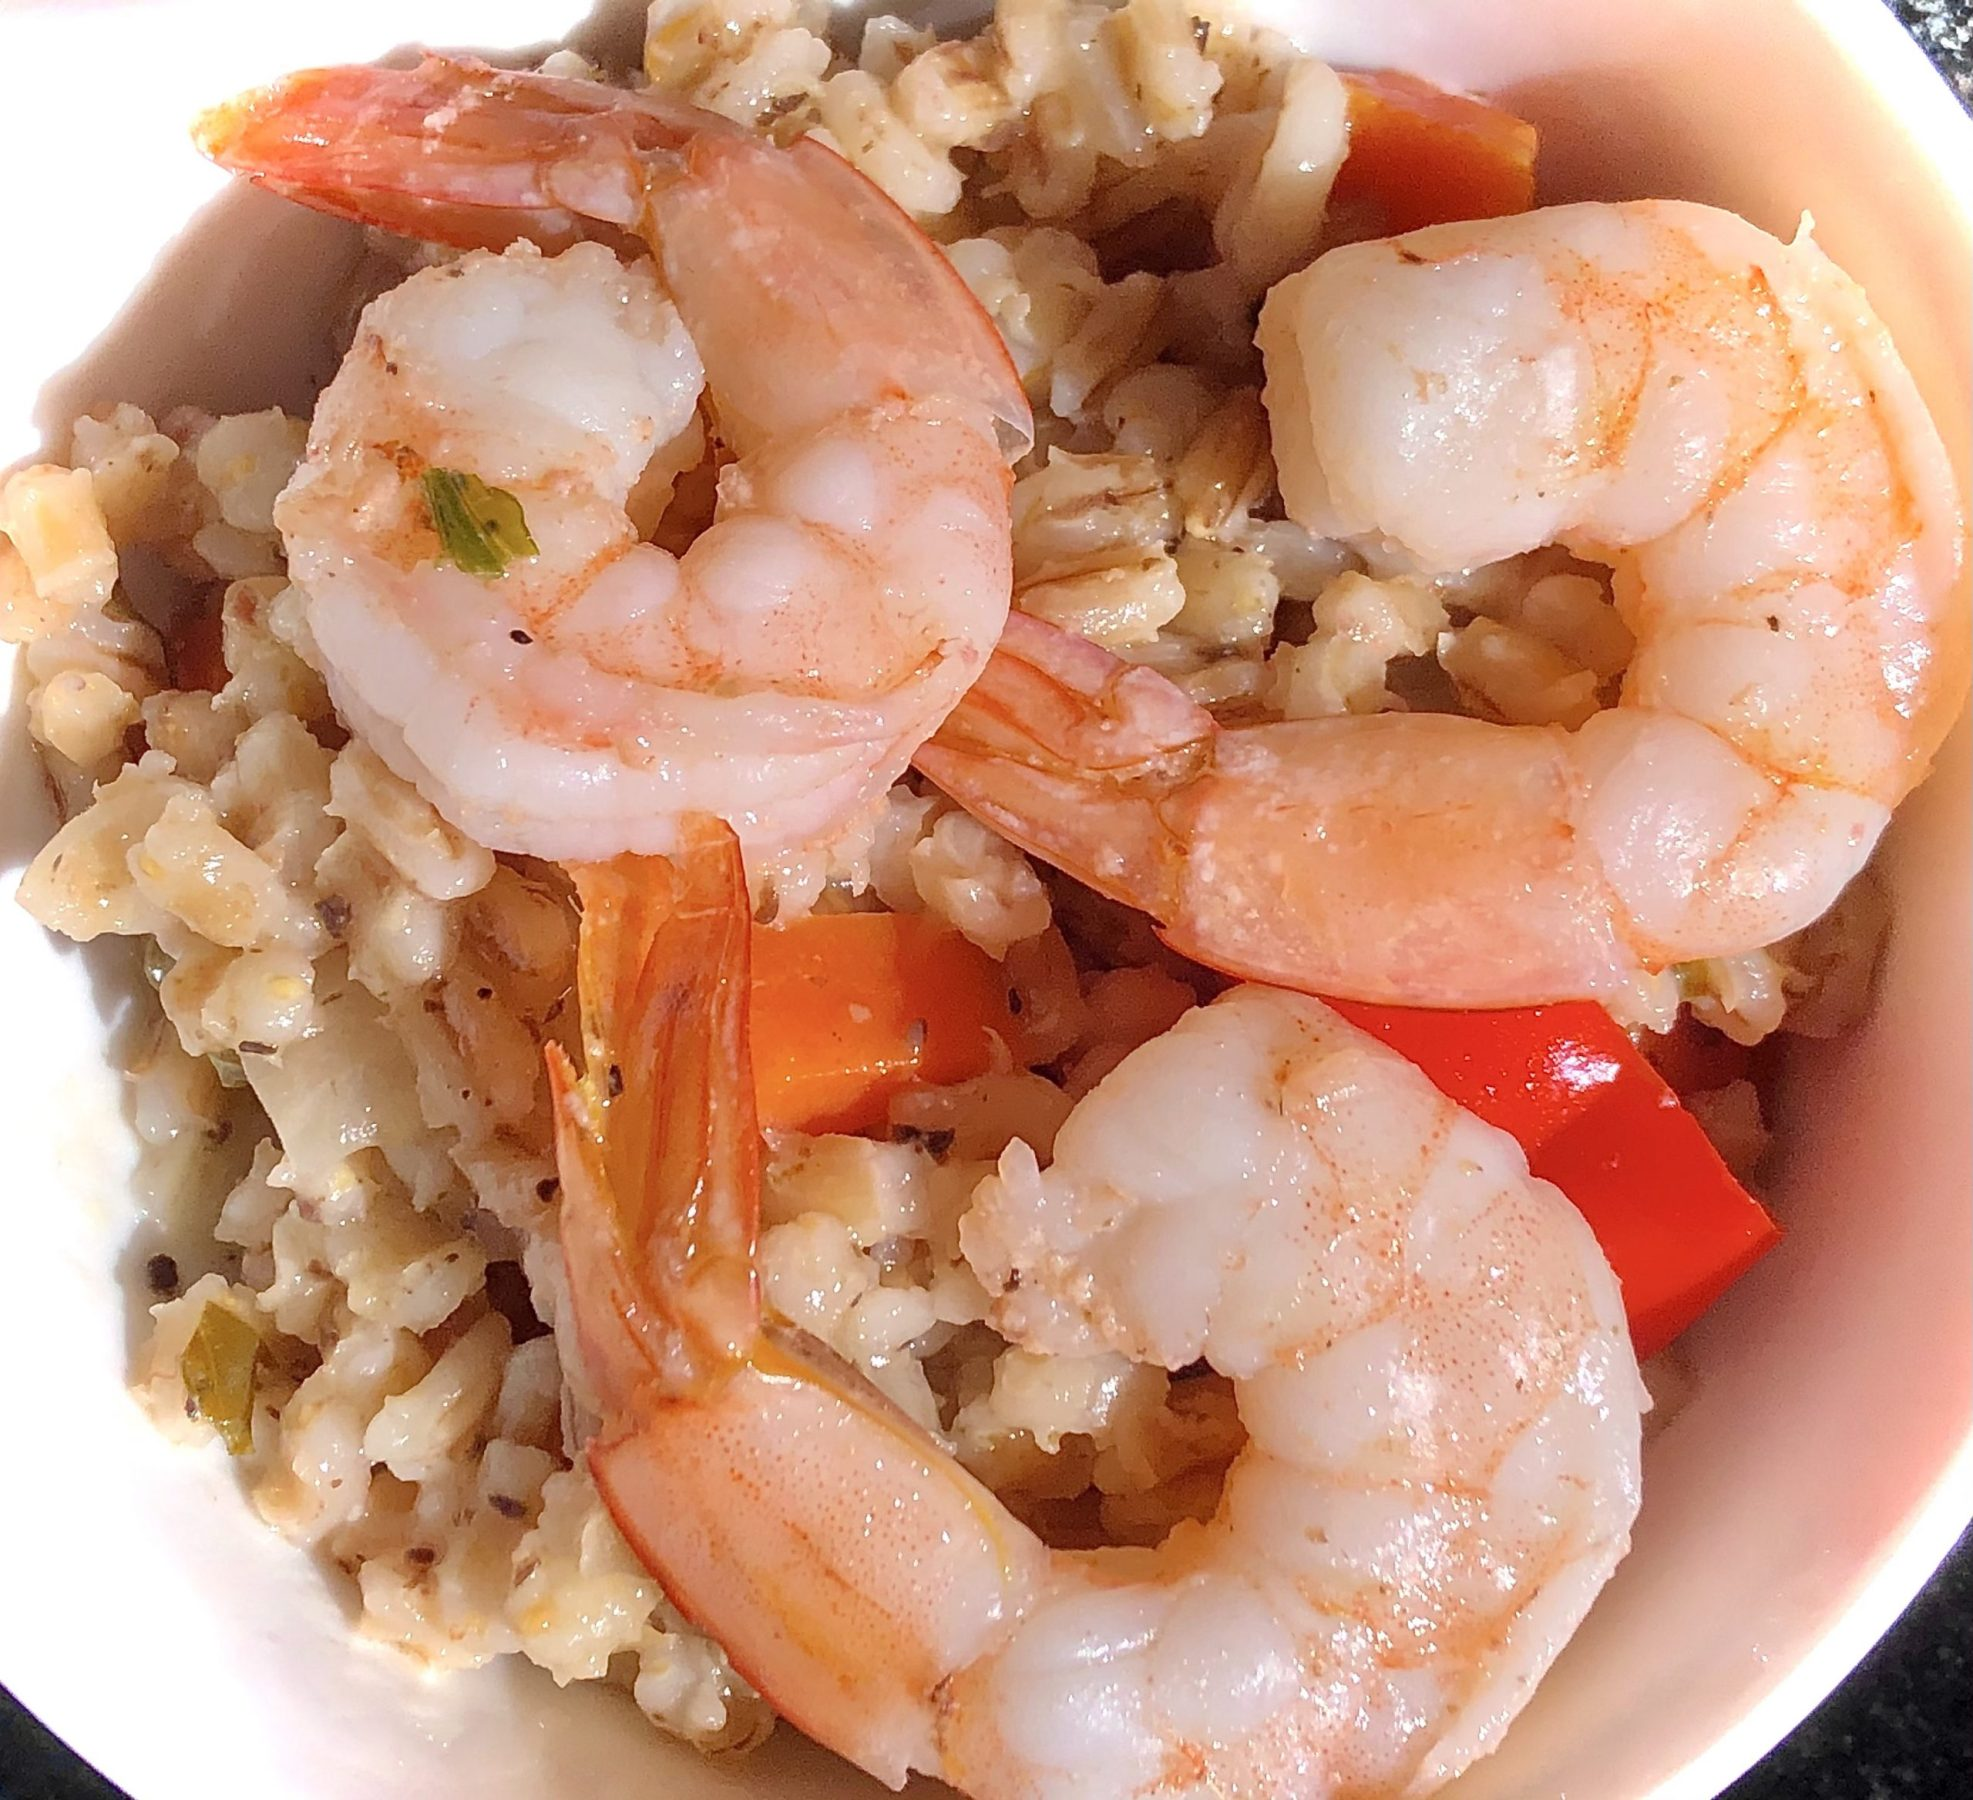 Barley risotto with shrimps